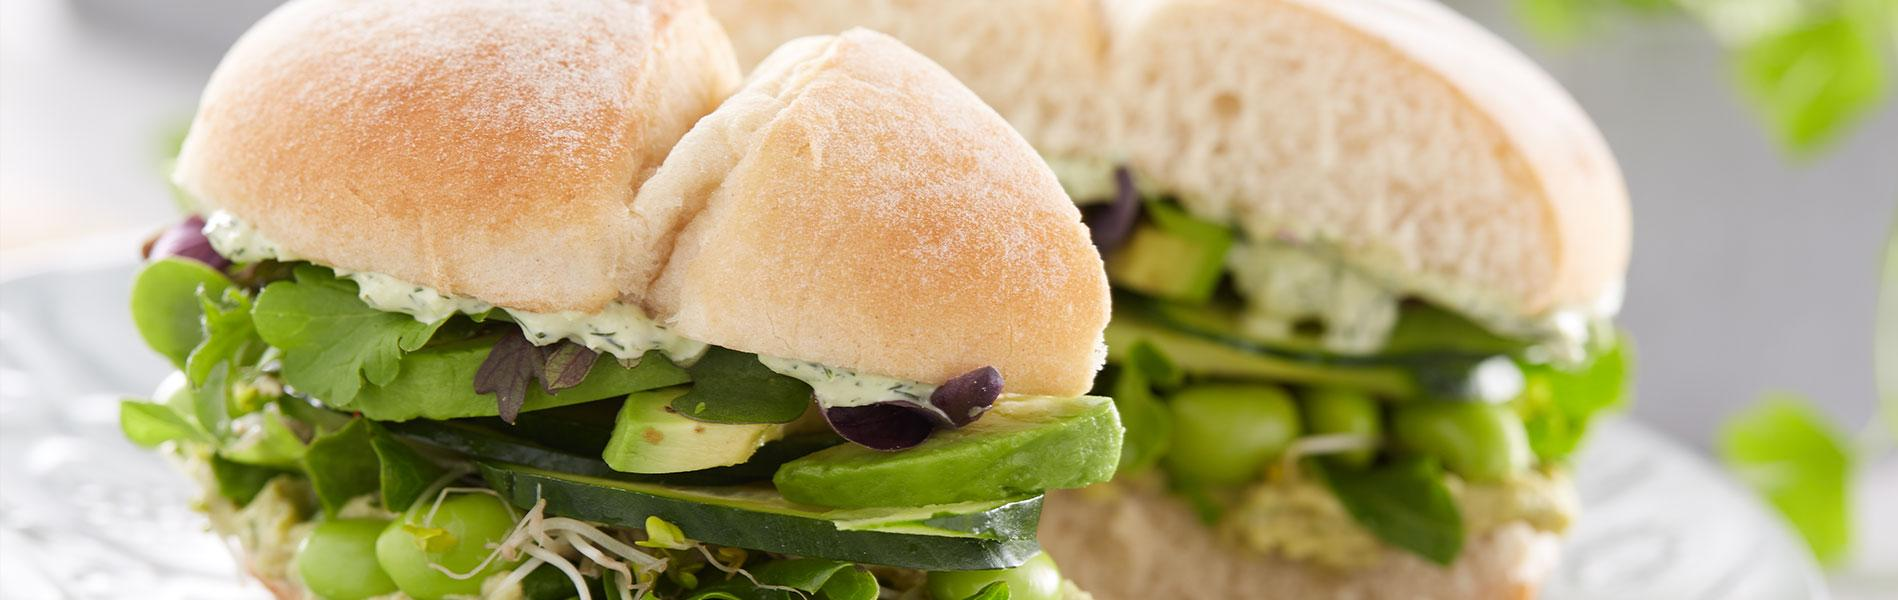 Lettuce, edamame, cucumber and sprouts sandwich